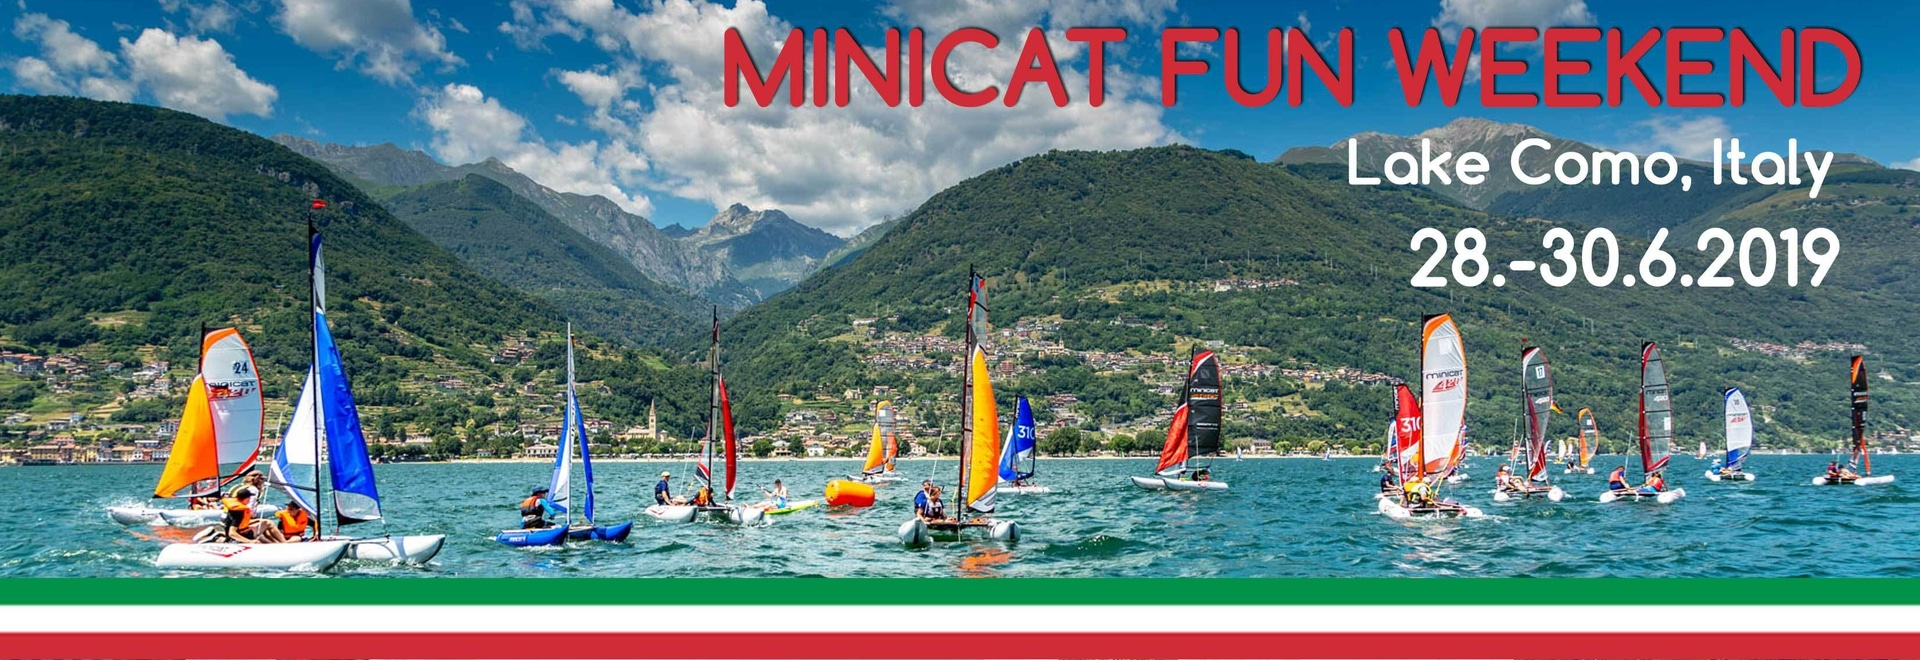 MiniCat Divertimento Weekend 2019